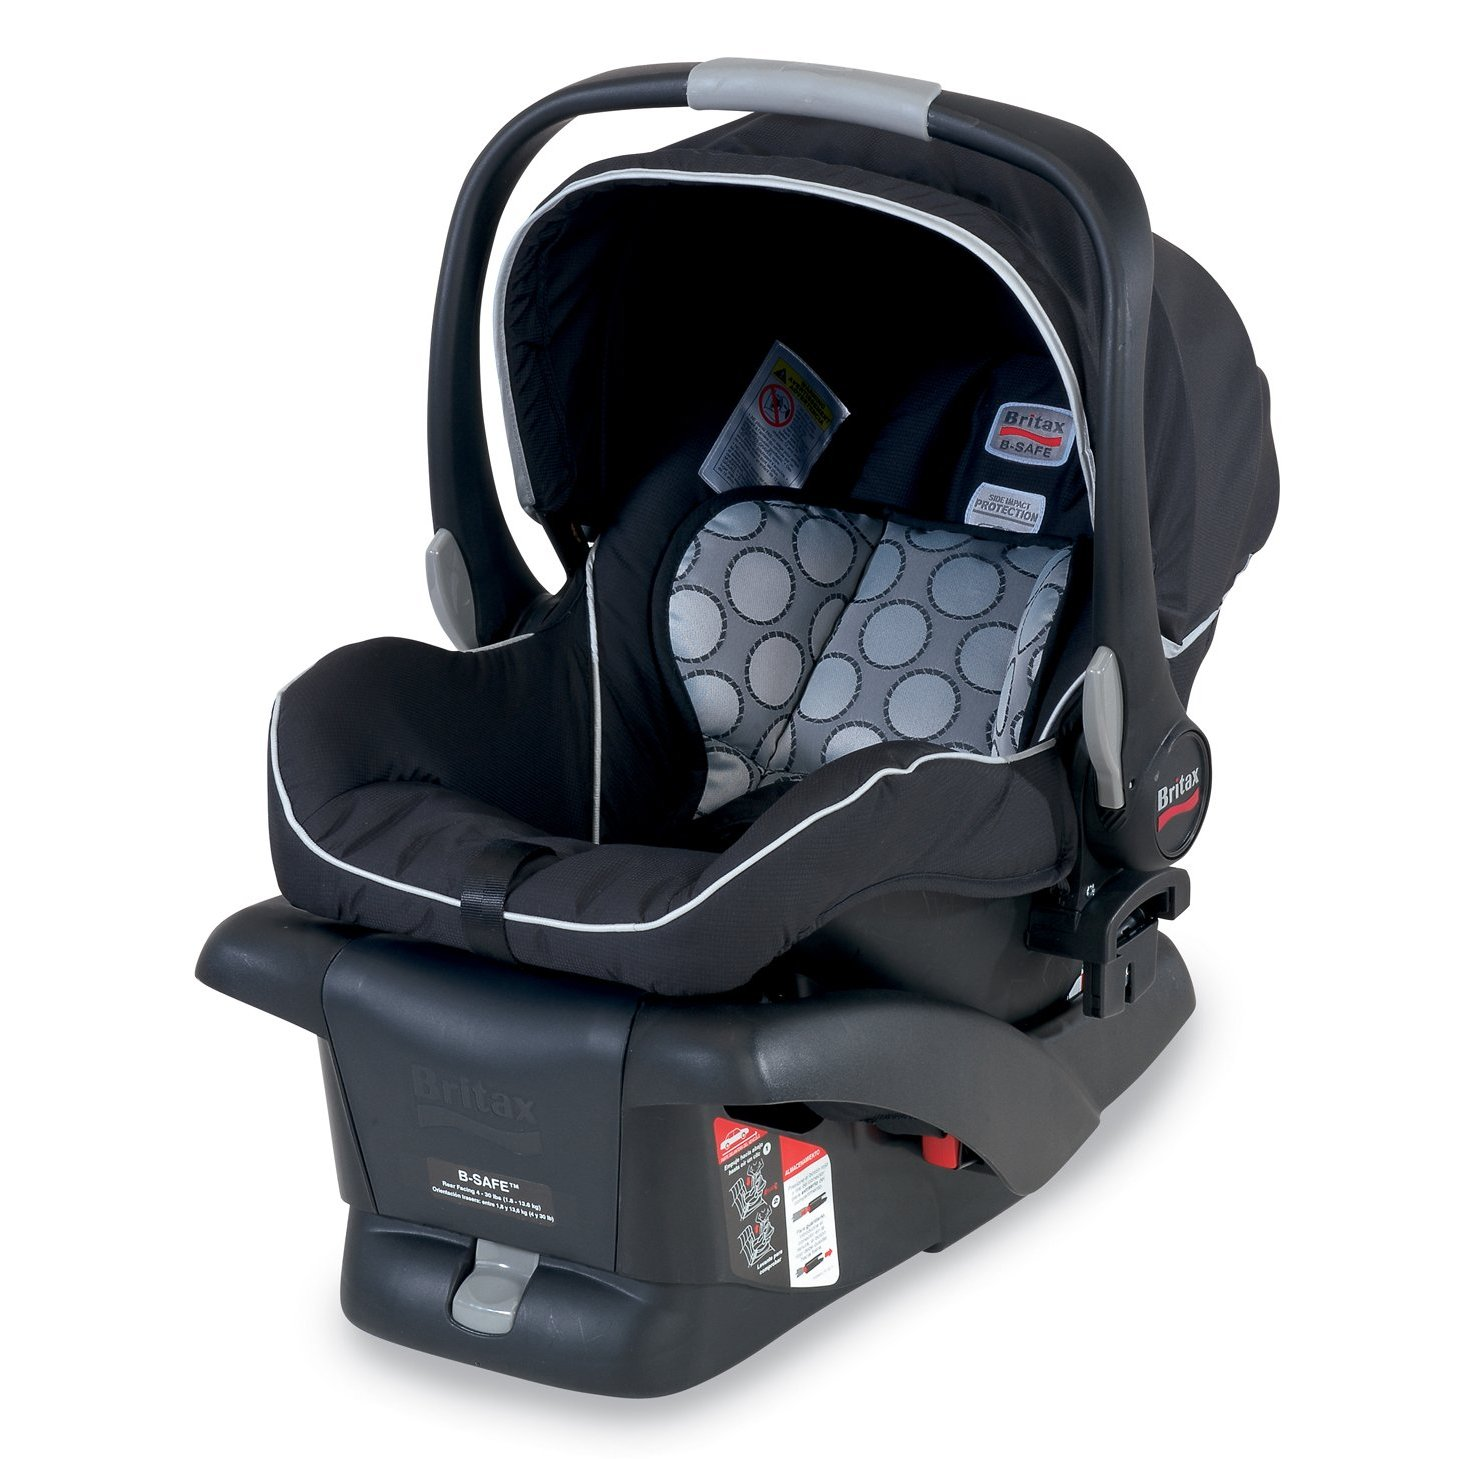 car seats Our team of experts has selected the best convertible car seats out of hundreds of models don't buy a baby car seat before reading these reviews.